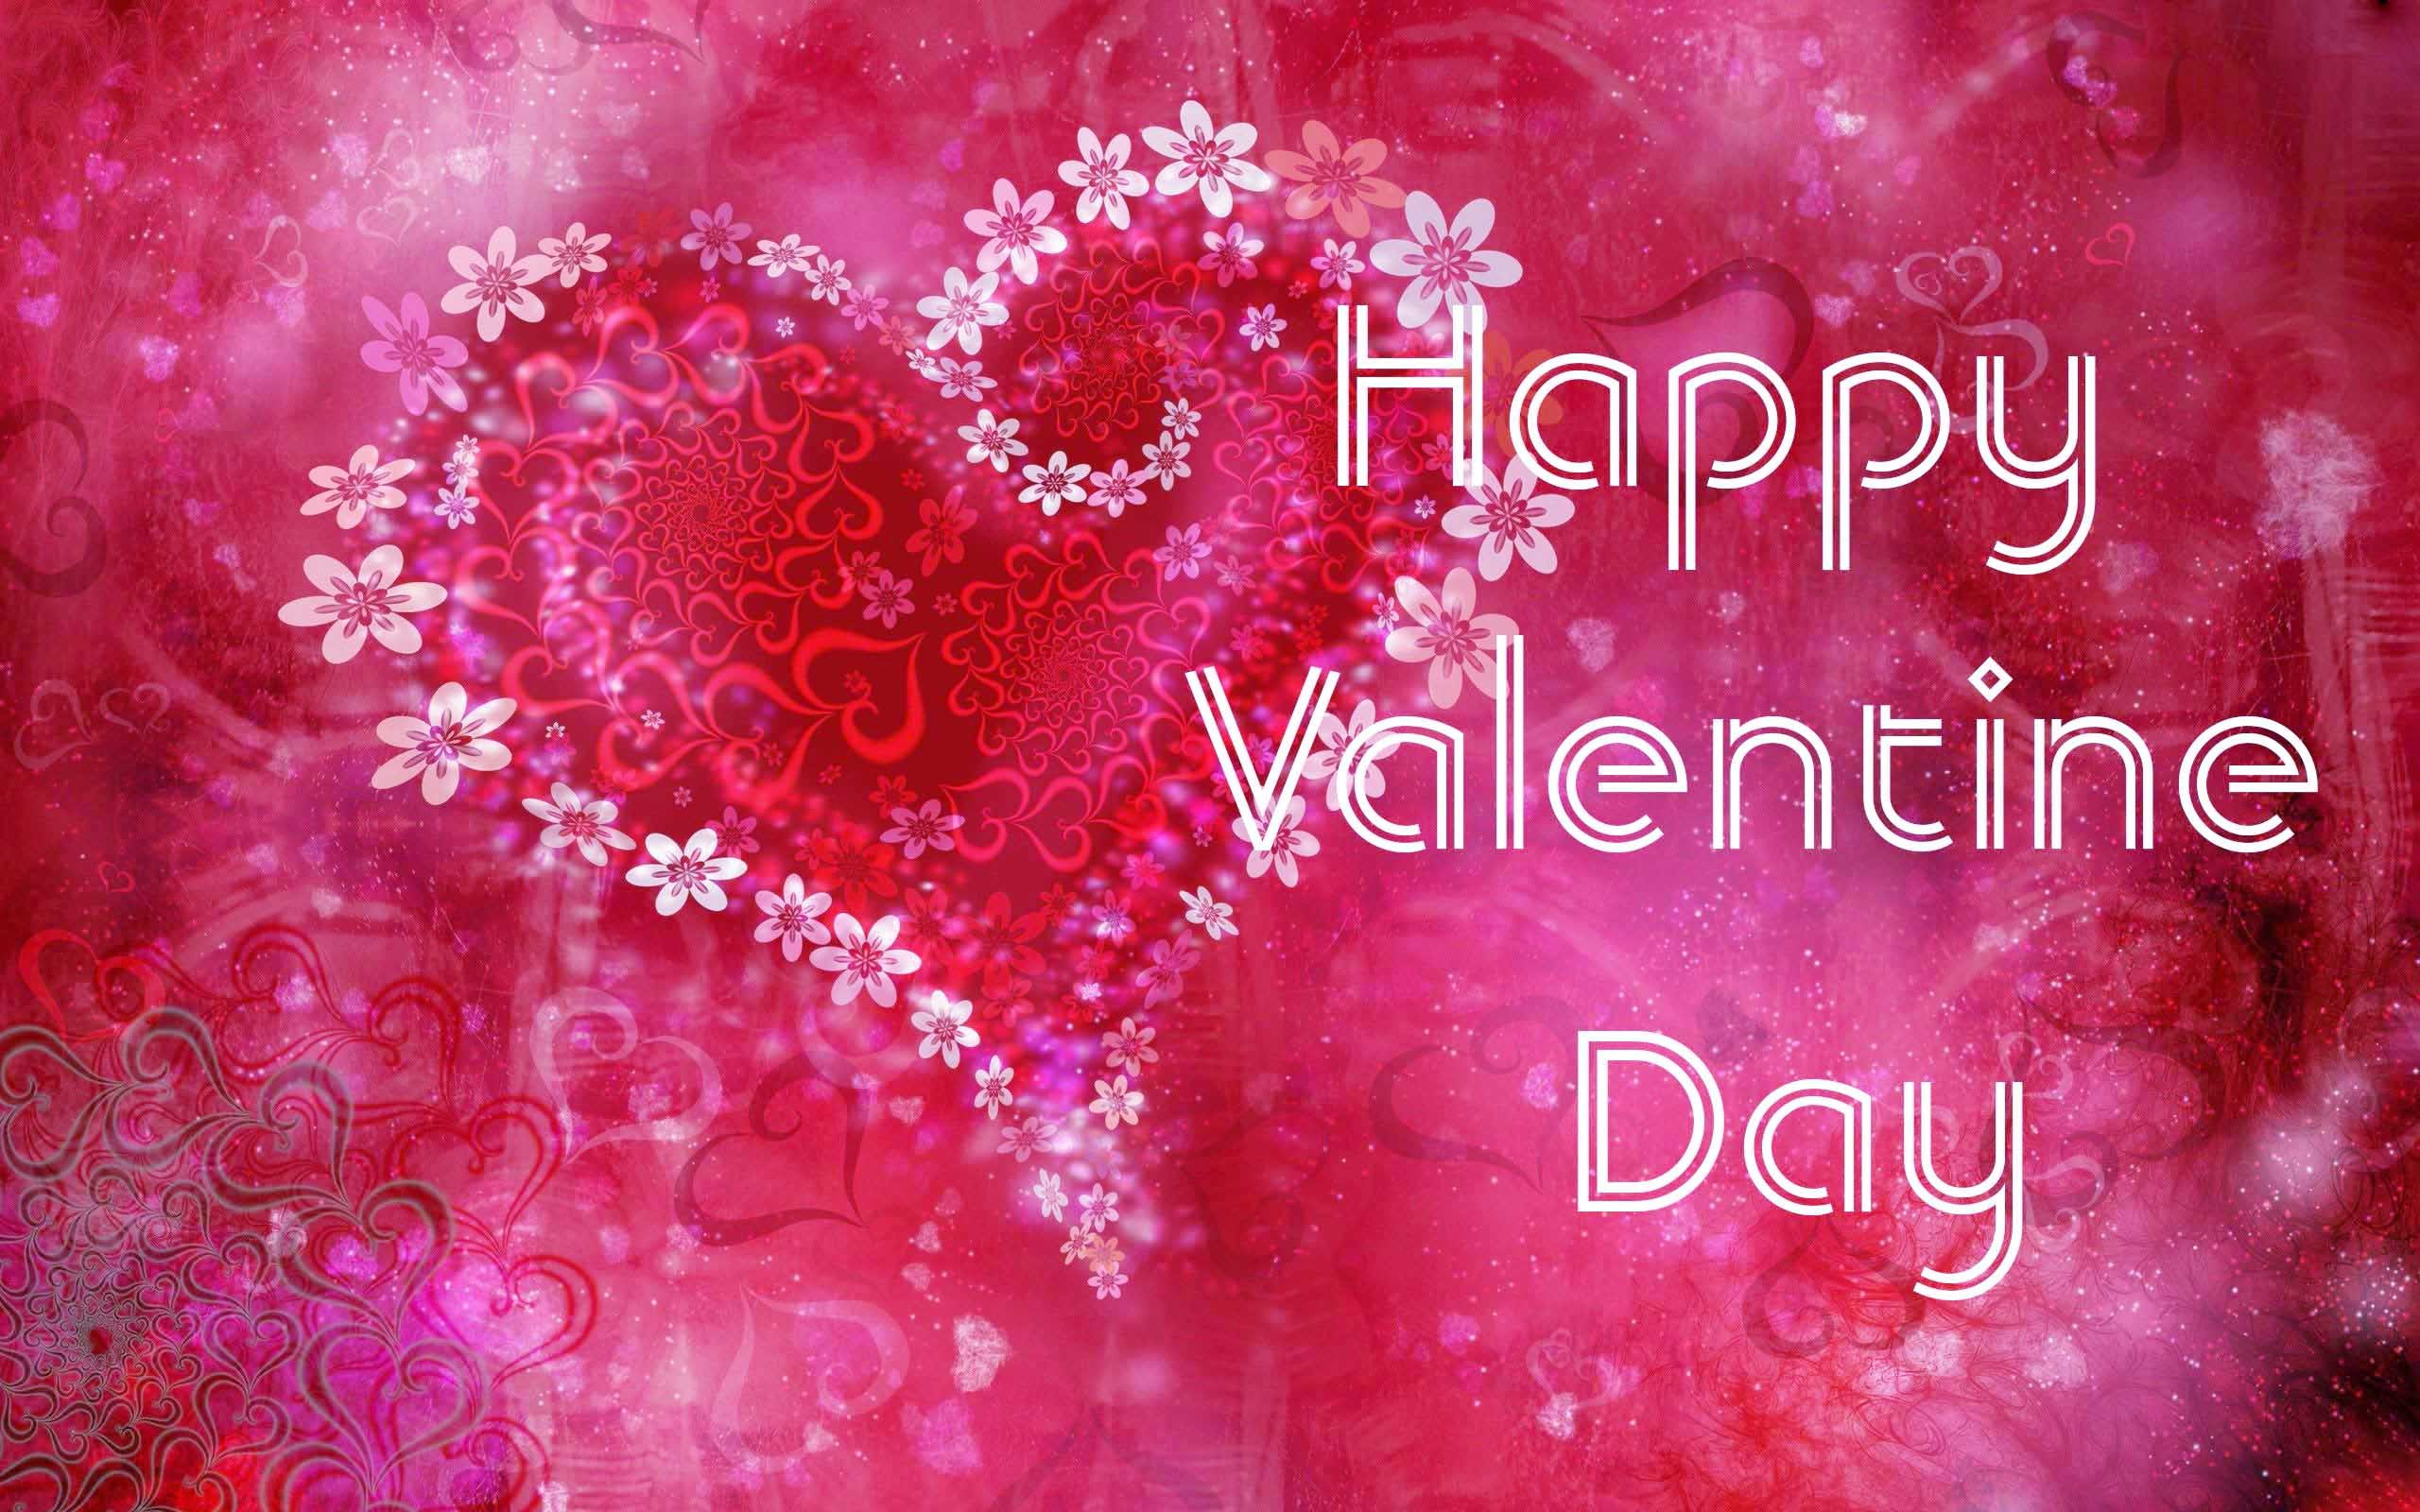 Happy Valentines Day Wallpapers HD 2560x1600